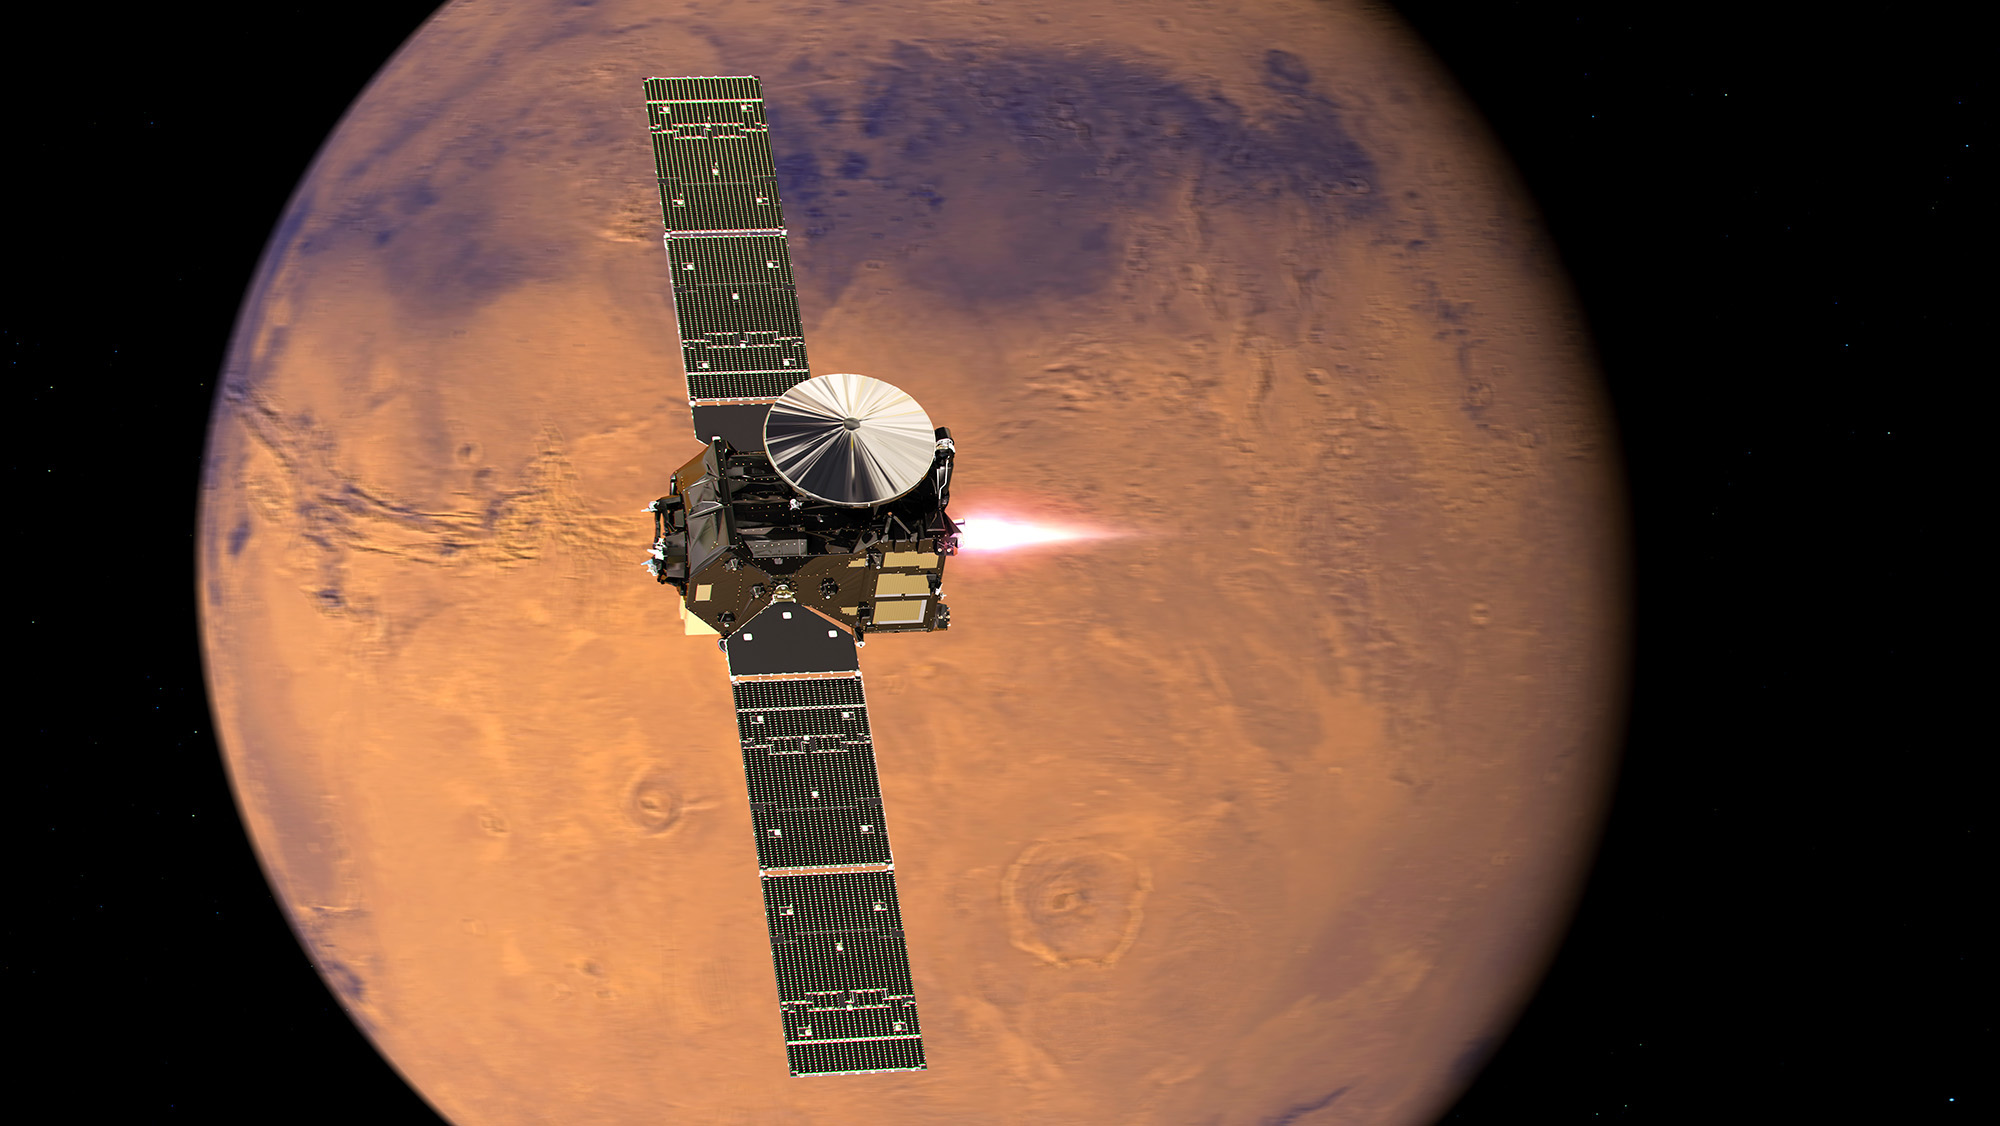 Unresponsive Schiaparelli could spell another failed Mars landing